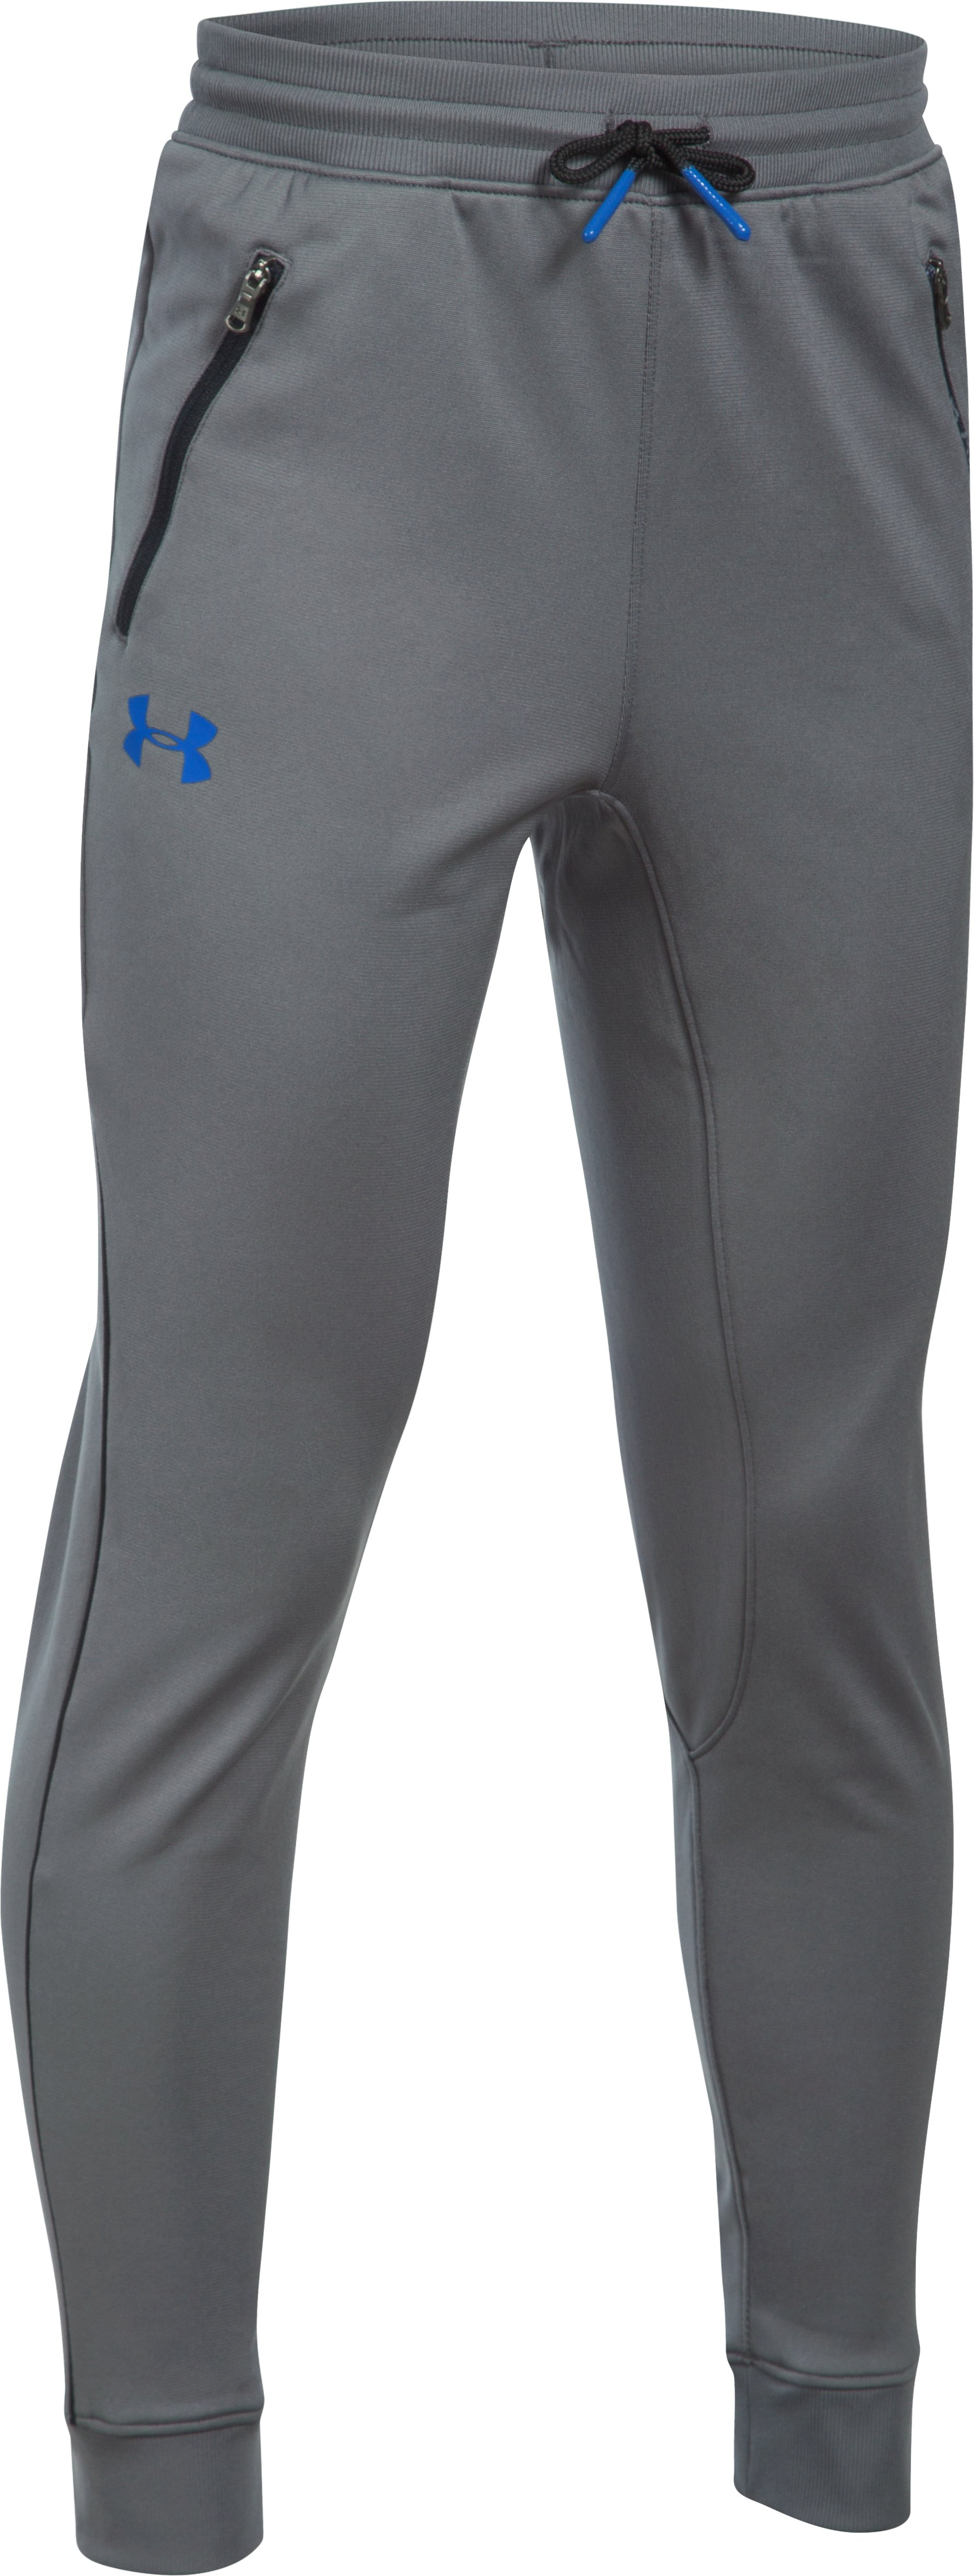 Boys' UA Pennant Tapered Pants, Graphite